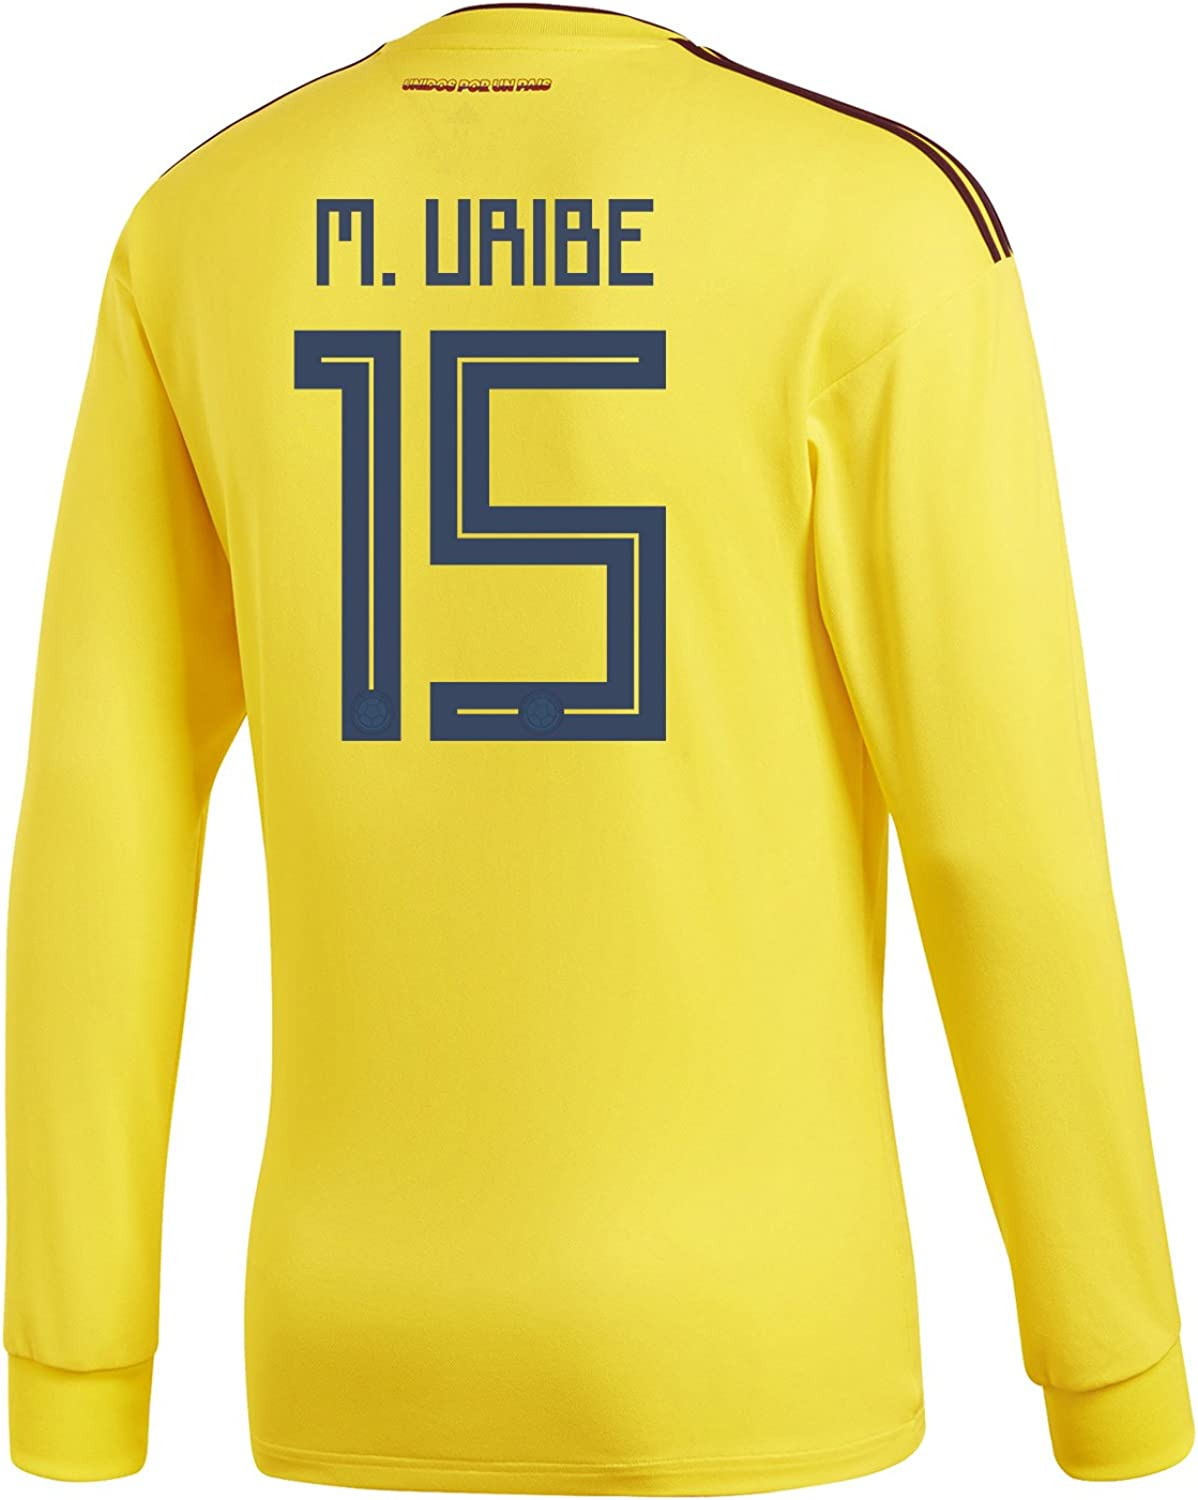 Adidas M. Uribe  15 Colombia Home Men's Long Sleeve Soccer Jersey World Cup 2018